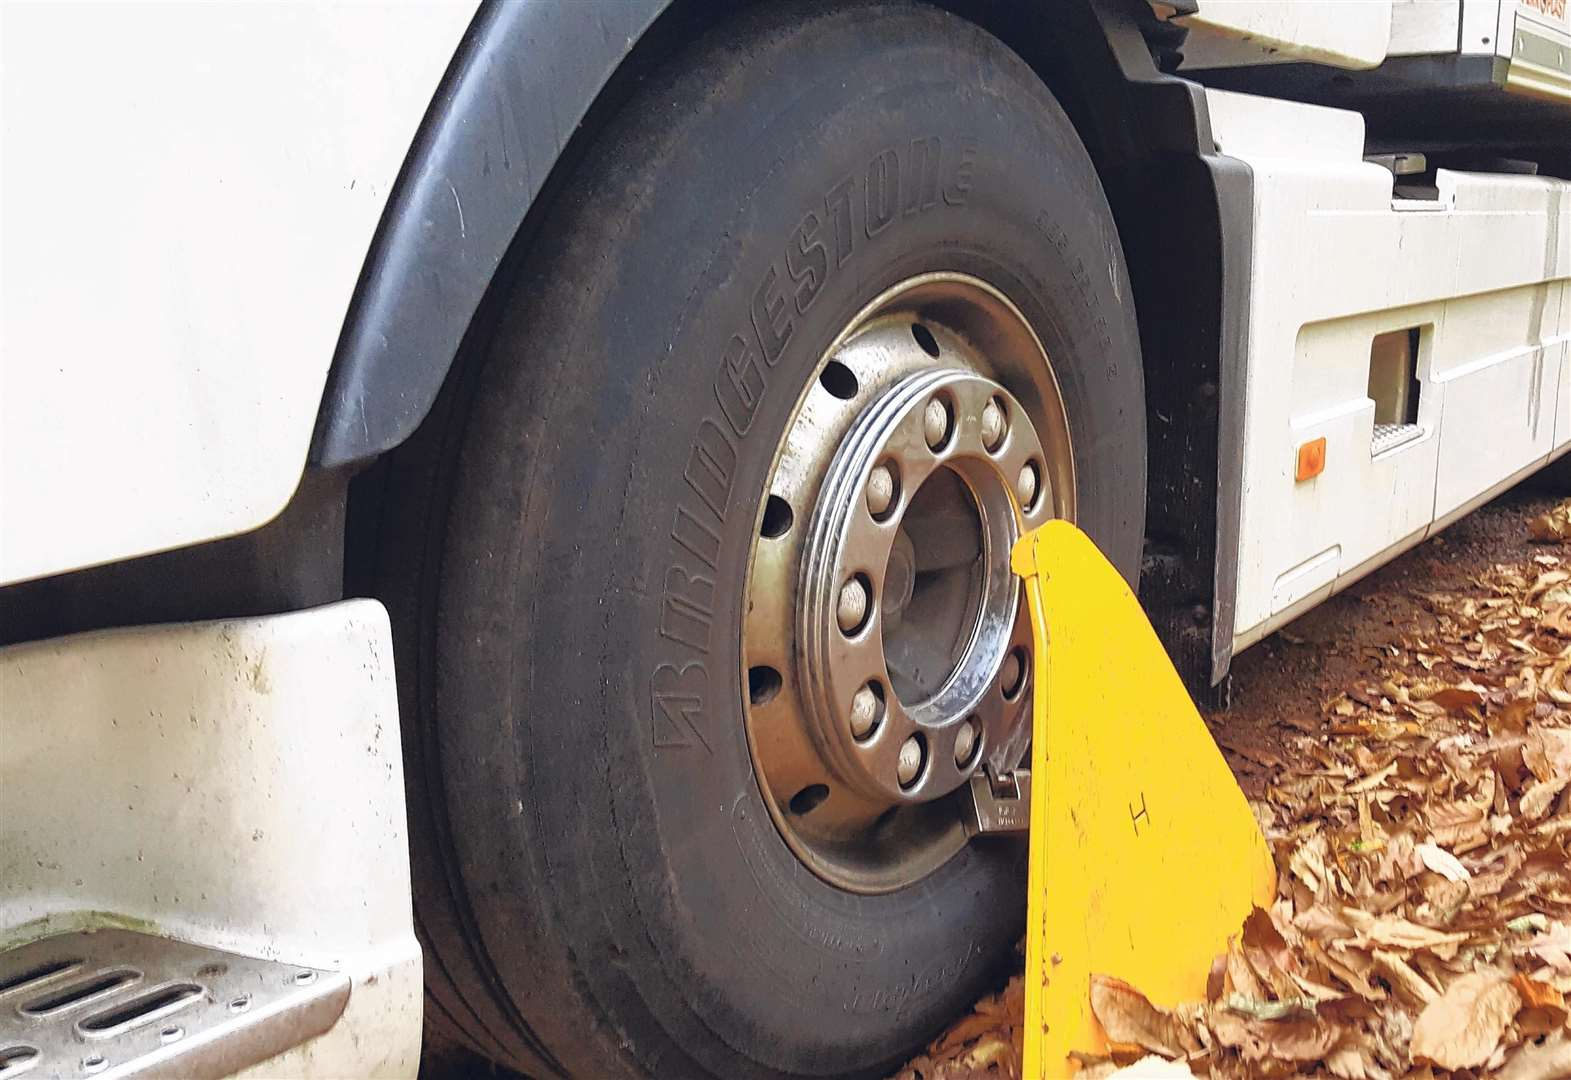 HGV clamping trial could be extended